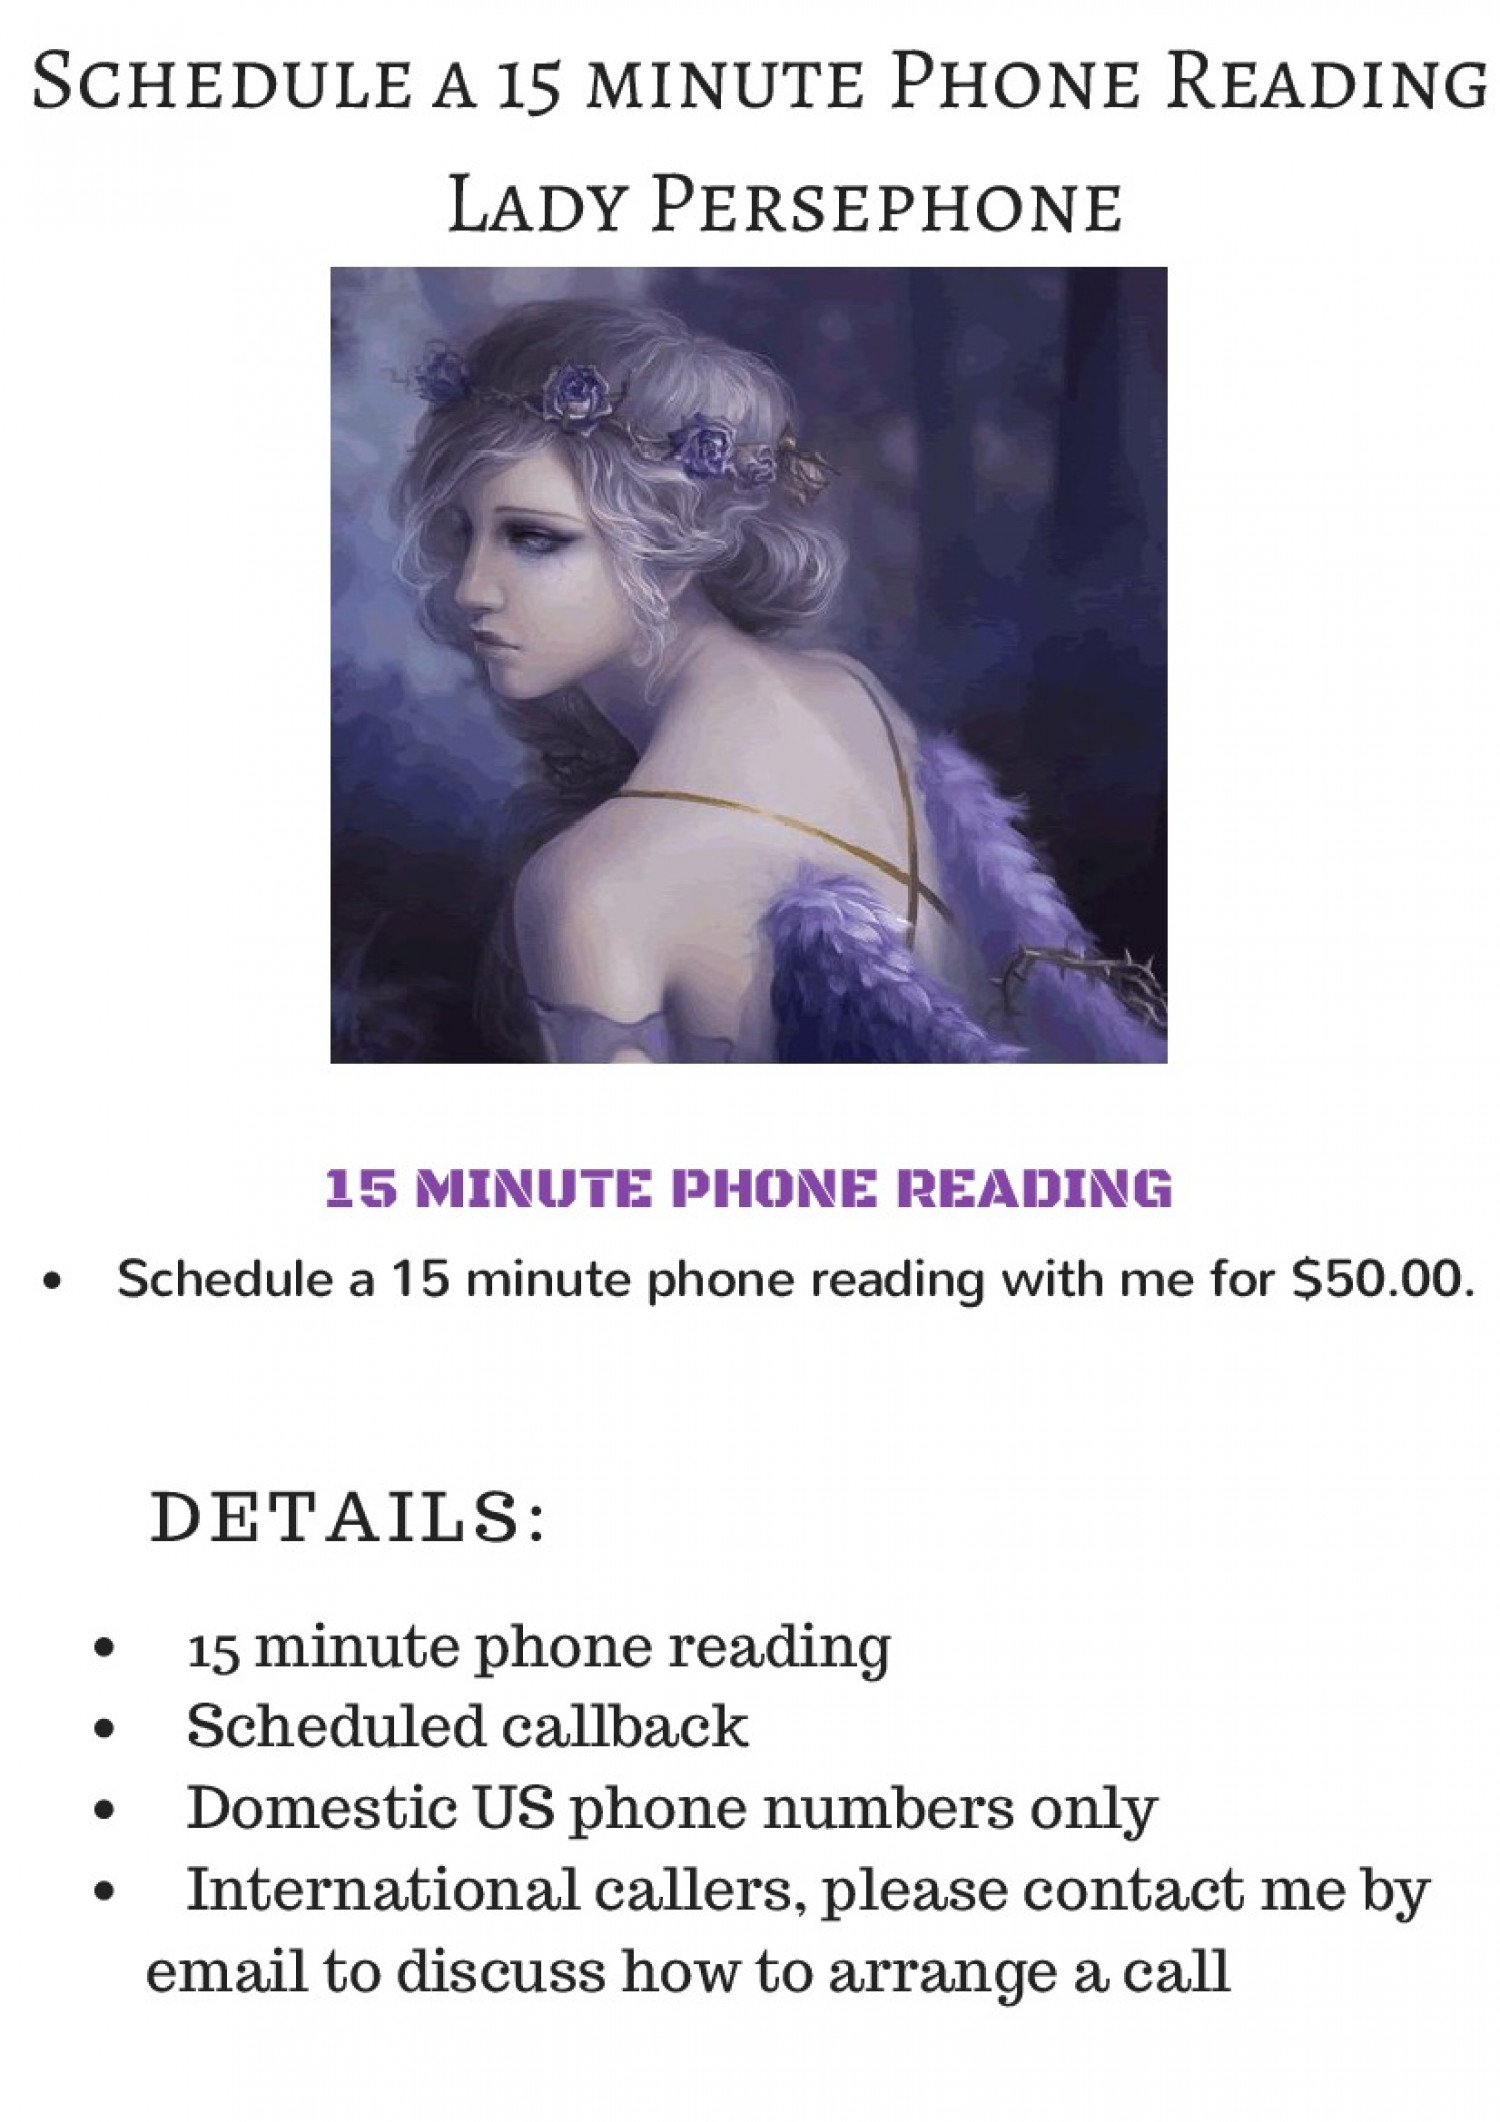 Schedule a 15 minute Phone Reading - Lady Persephone Infographic